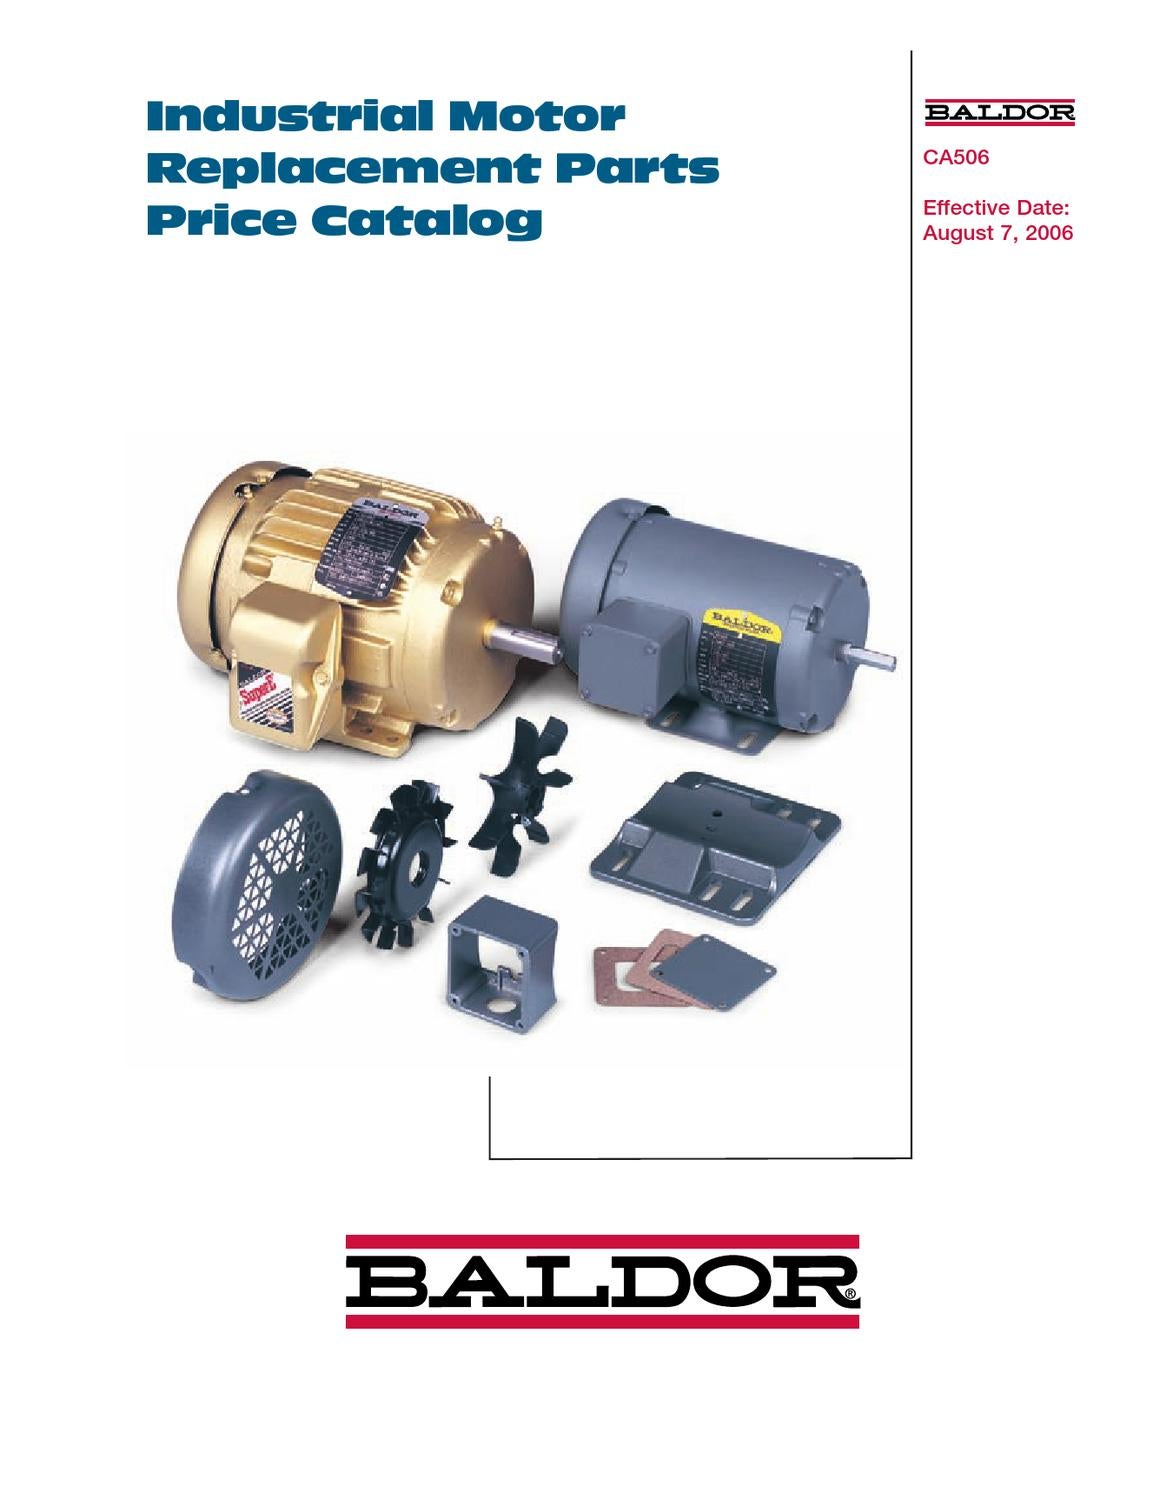 Baldor Generator Wiring Diagram also Ca506 moreover 45180 Self Starting Induction Motors as well 12 Pole Motor Wiring in addition Baldor 460v Wiring Diagram. on baldor single phase motor starting switches